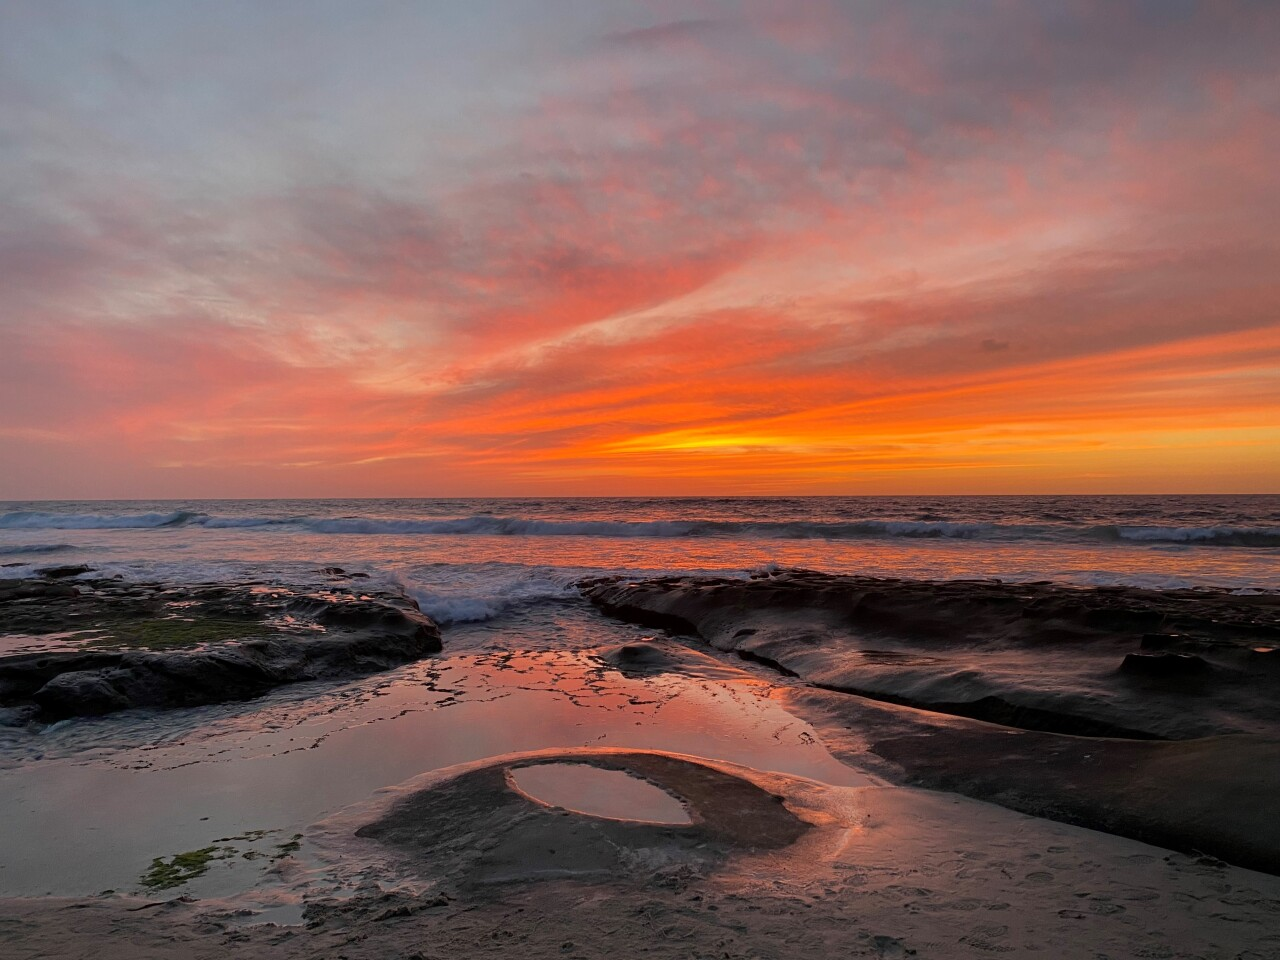 La Jolla's tide pools provide the vantage point for this sunset view.